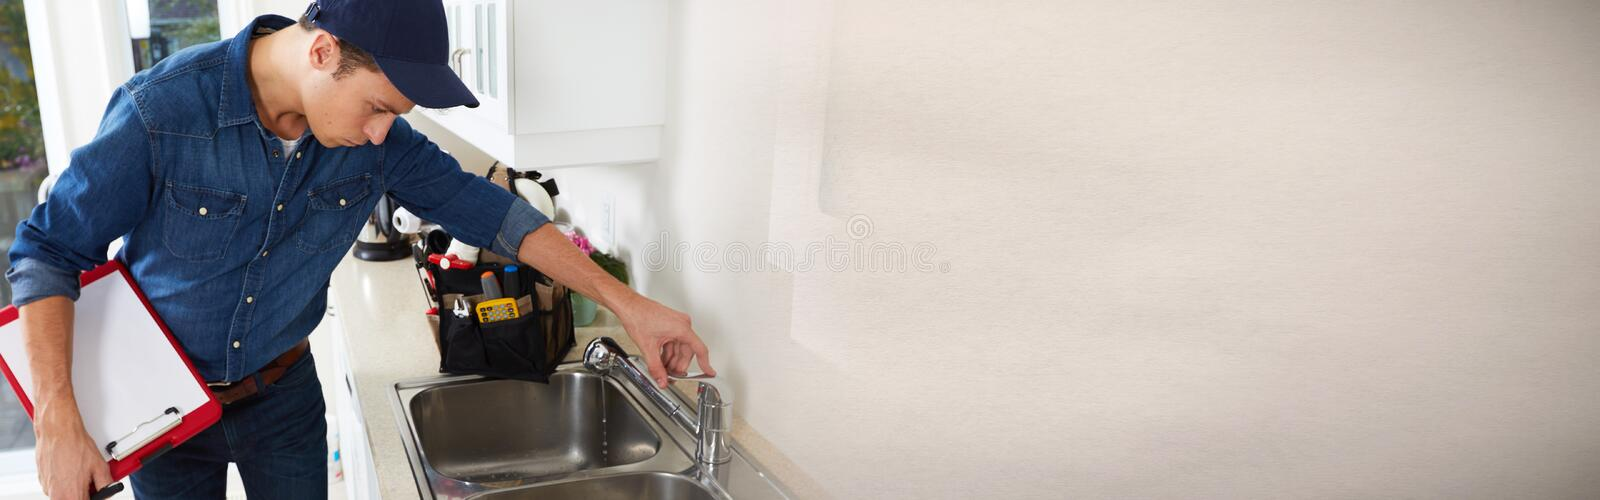 Plumber. stock images